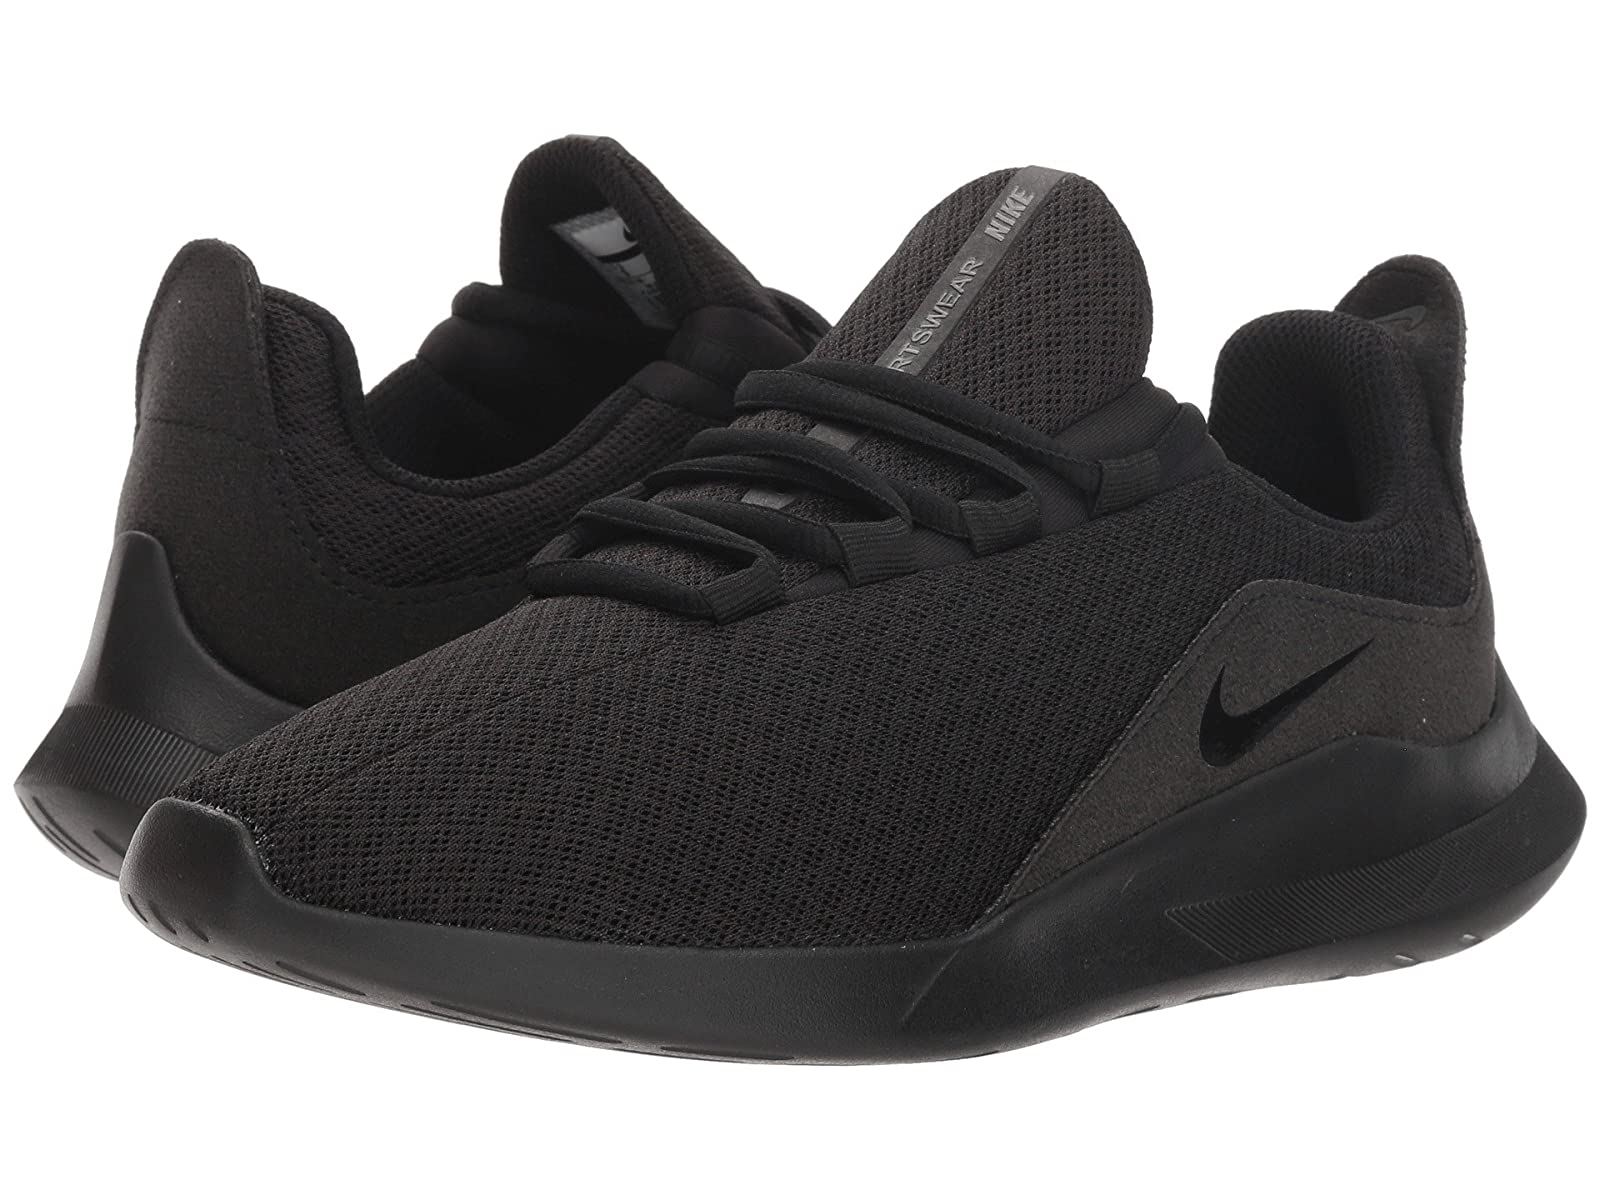 Nike VialeAtmospheric grades have affordable shoes